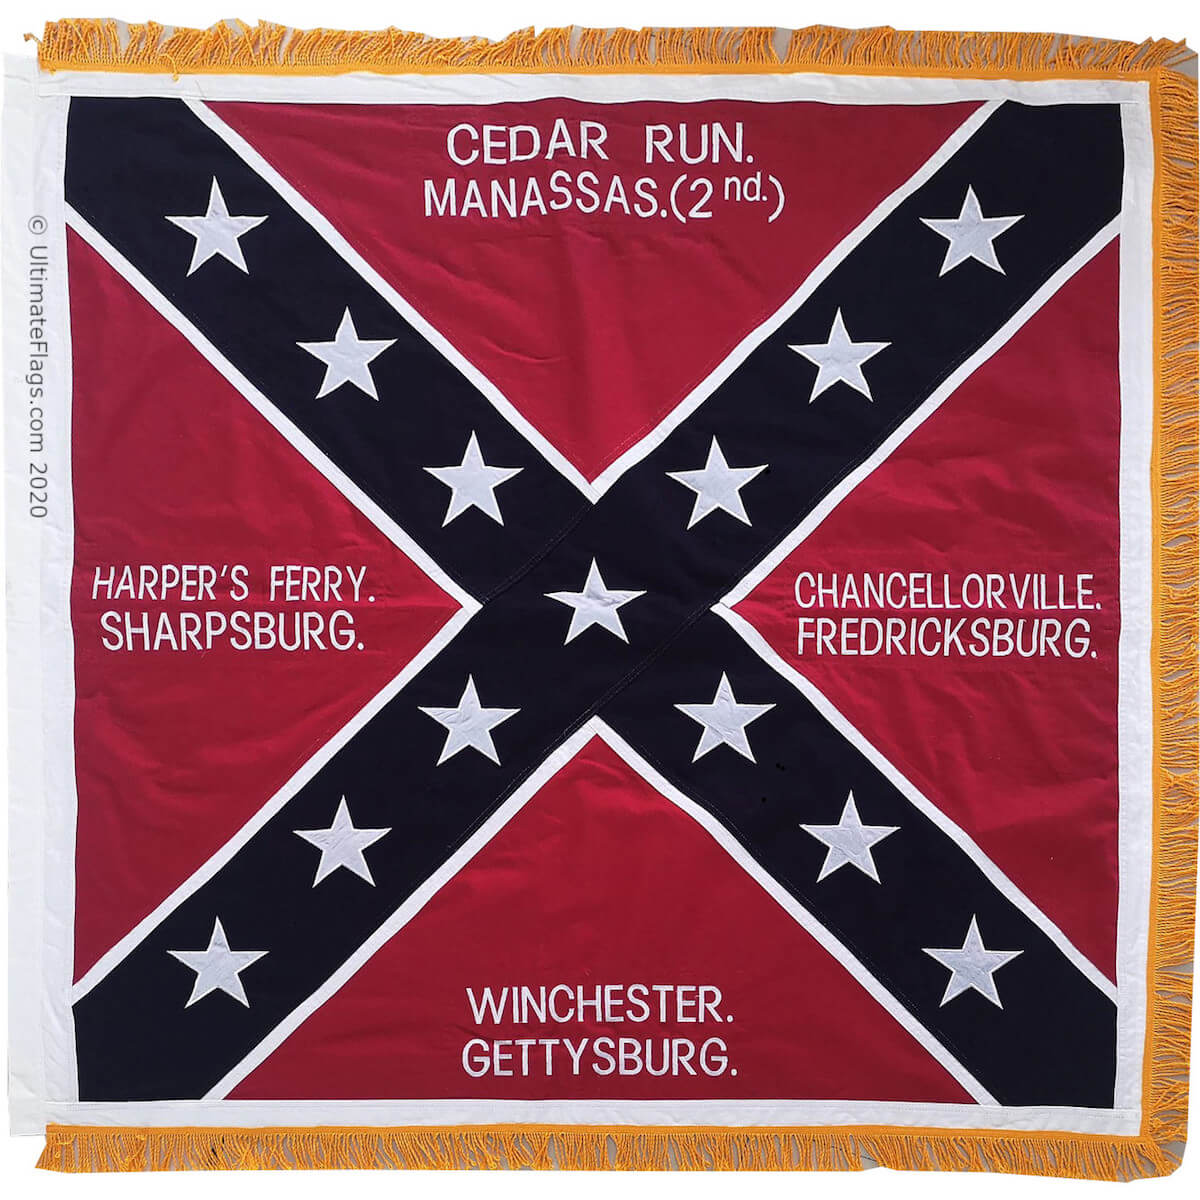 honors battle flag for sale manassas 2nd gettysburg winchester harper's ferry sharpsburg chancellorville fredricksburg cedar run